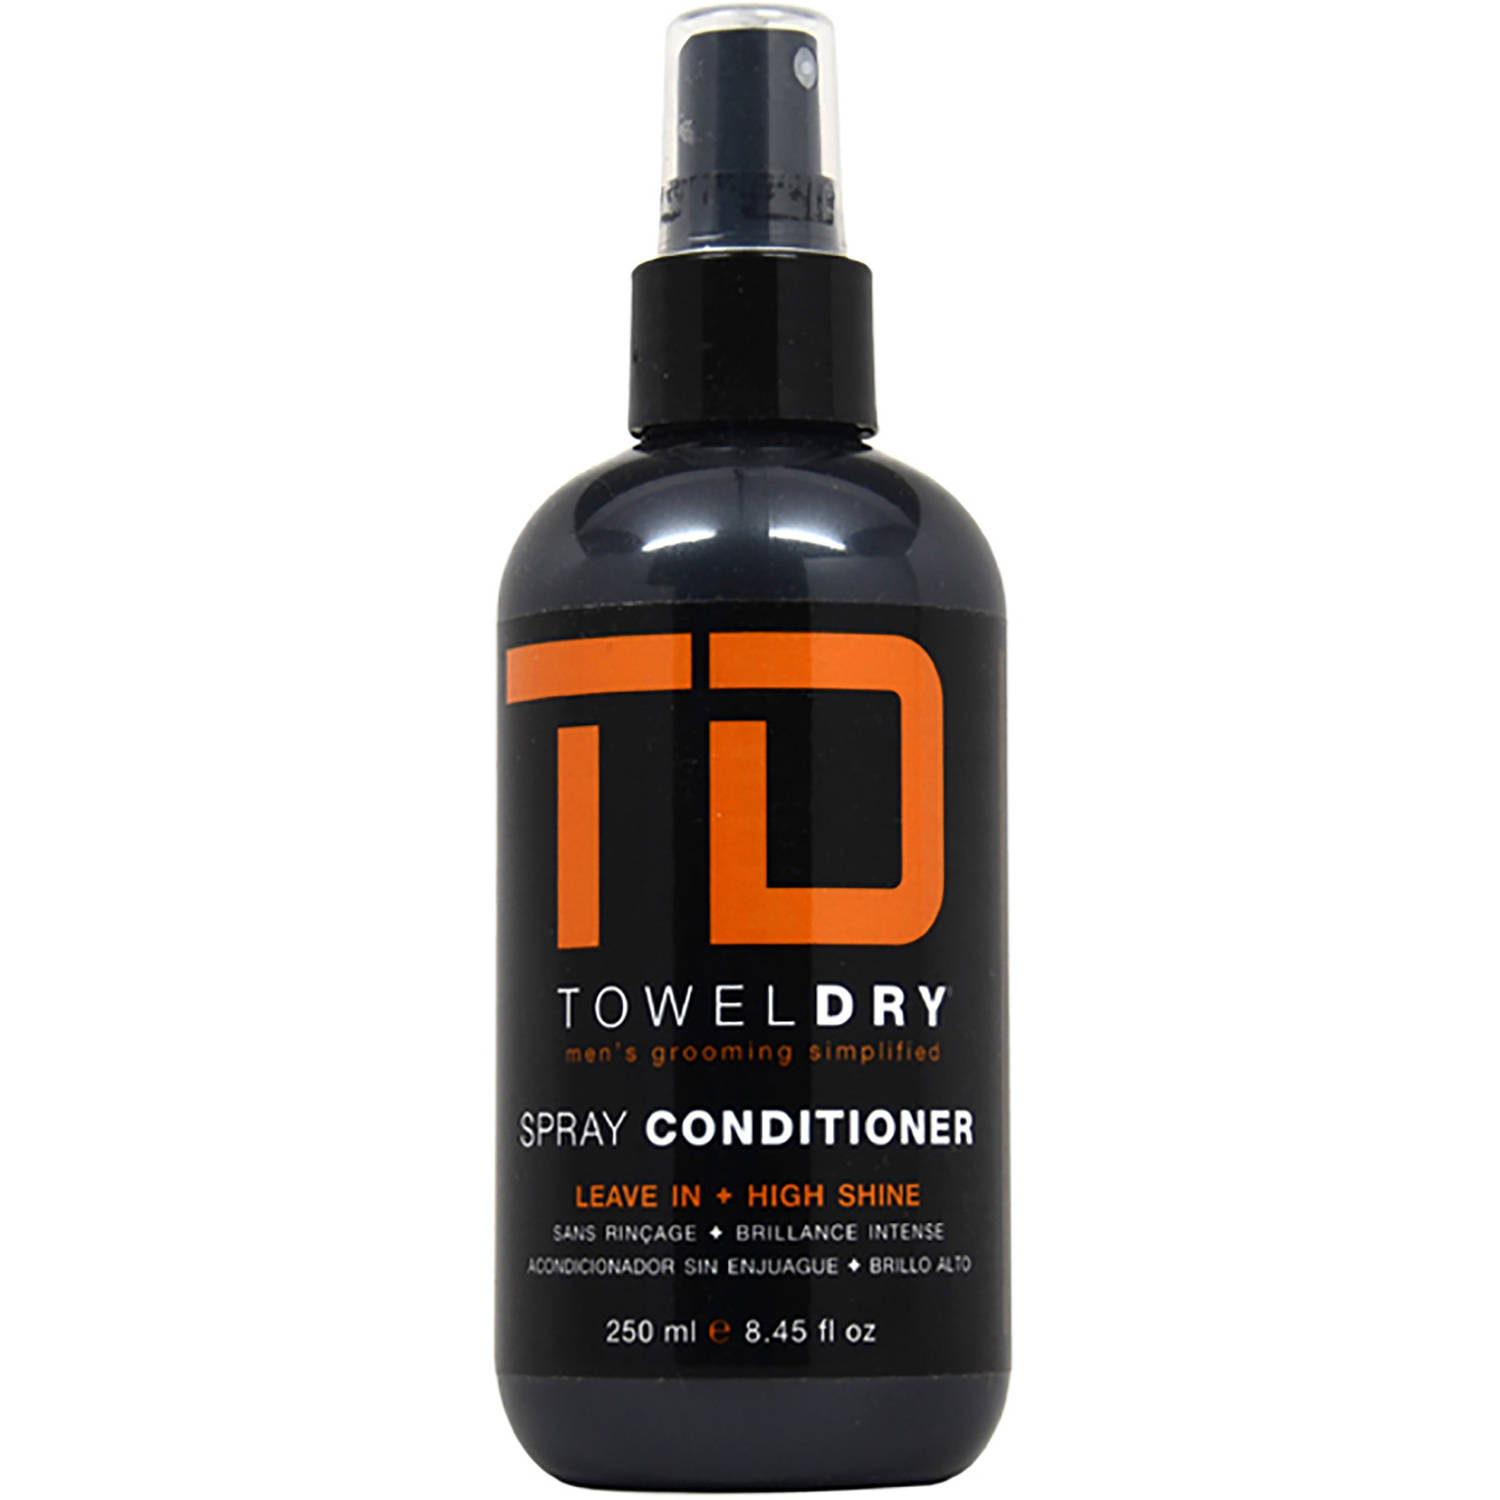 Spray Conditioner by Towel Dry for Men, 8.45 oz